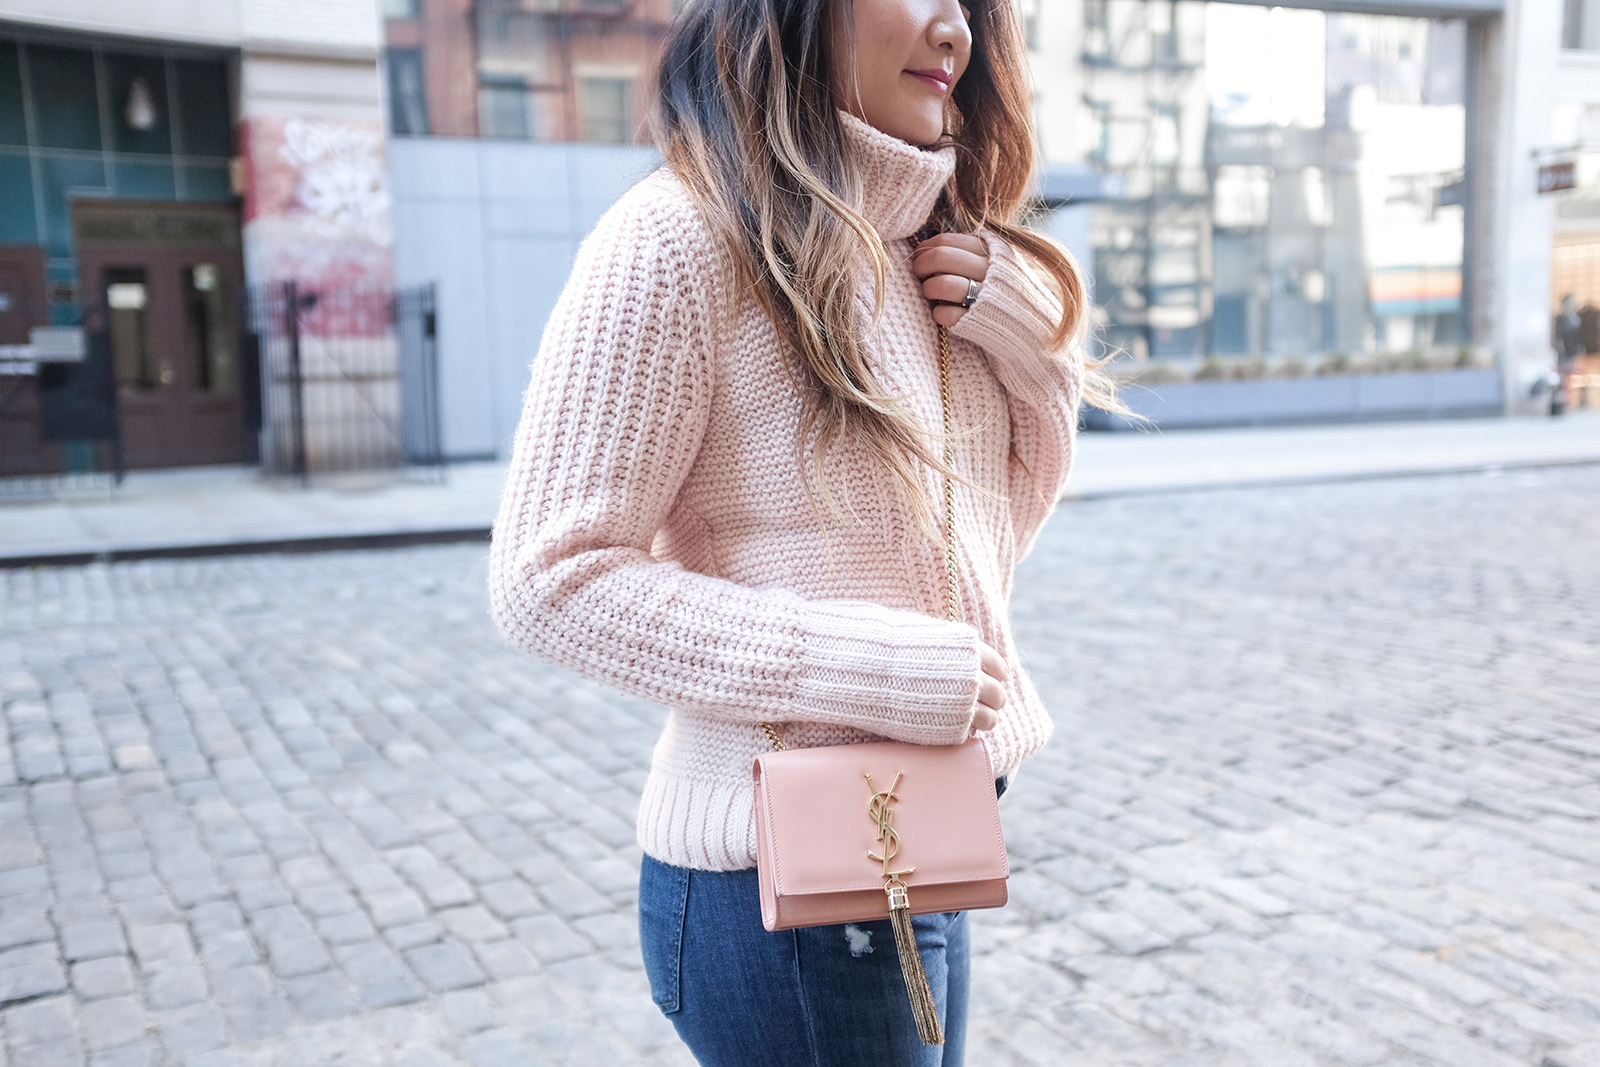 YSL tassel bag blush pink